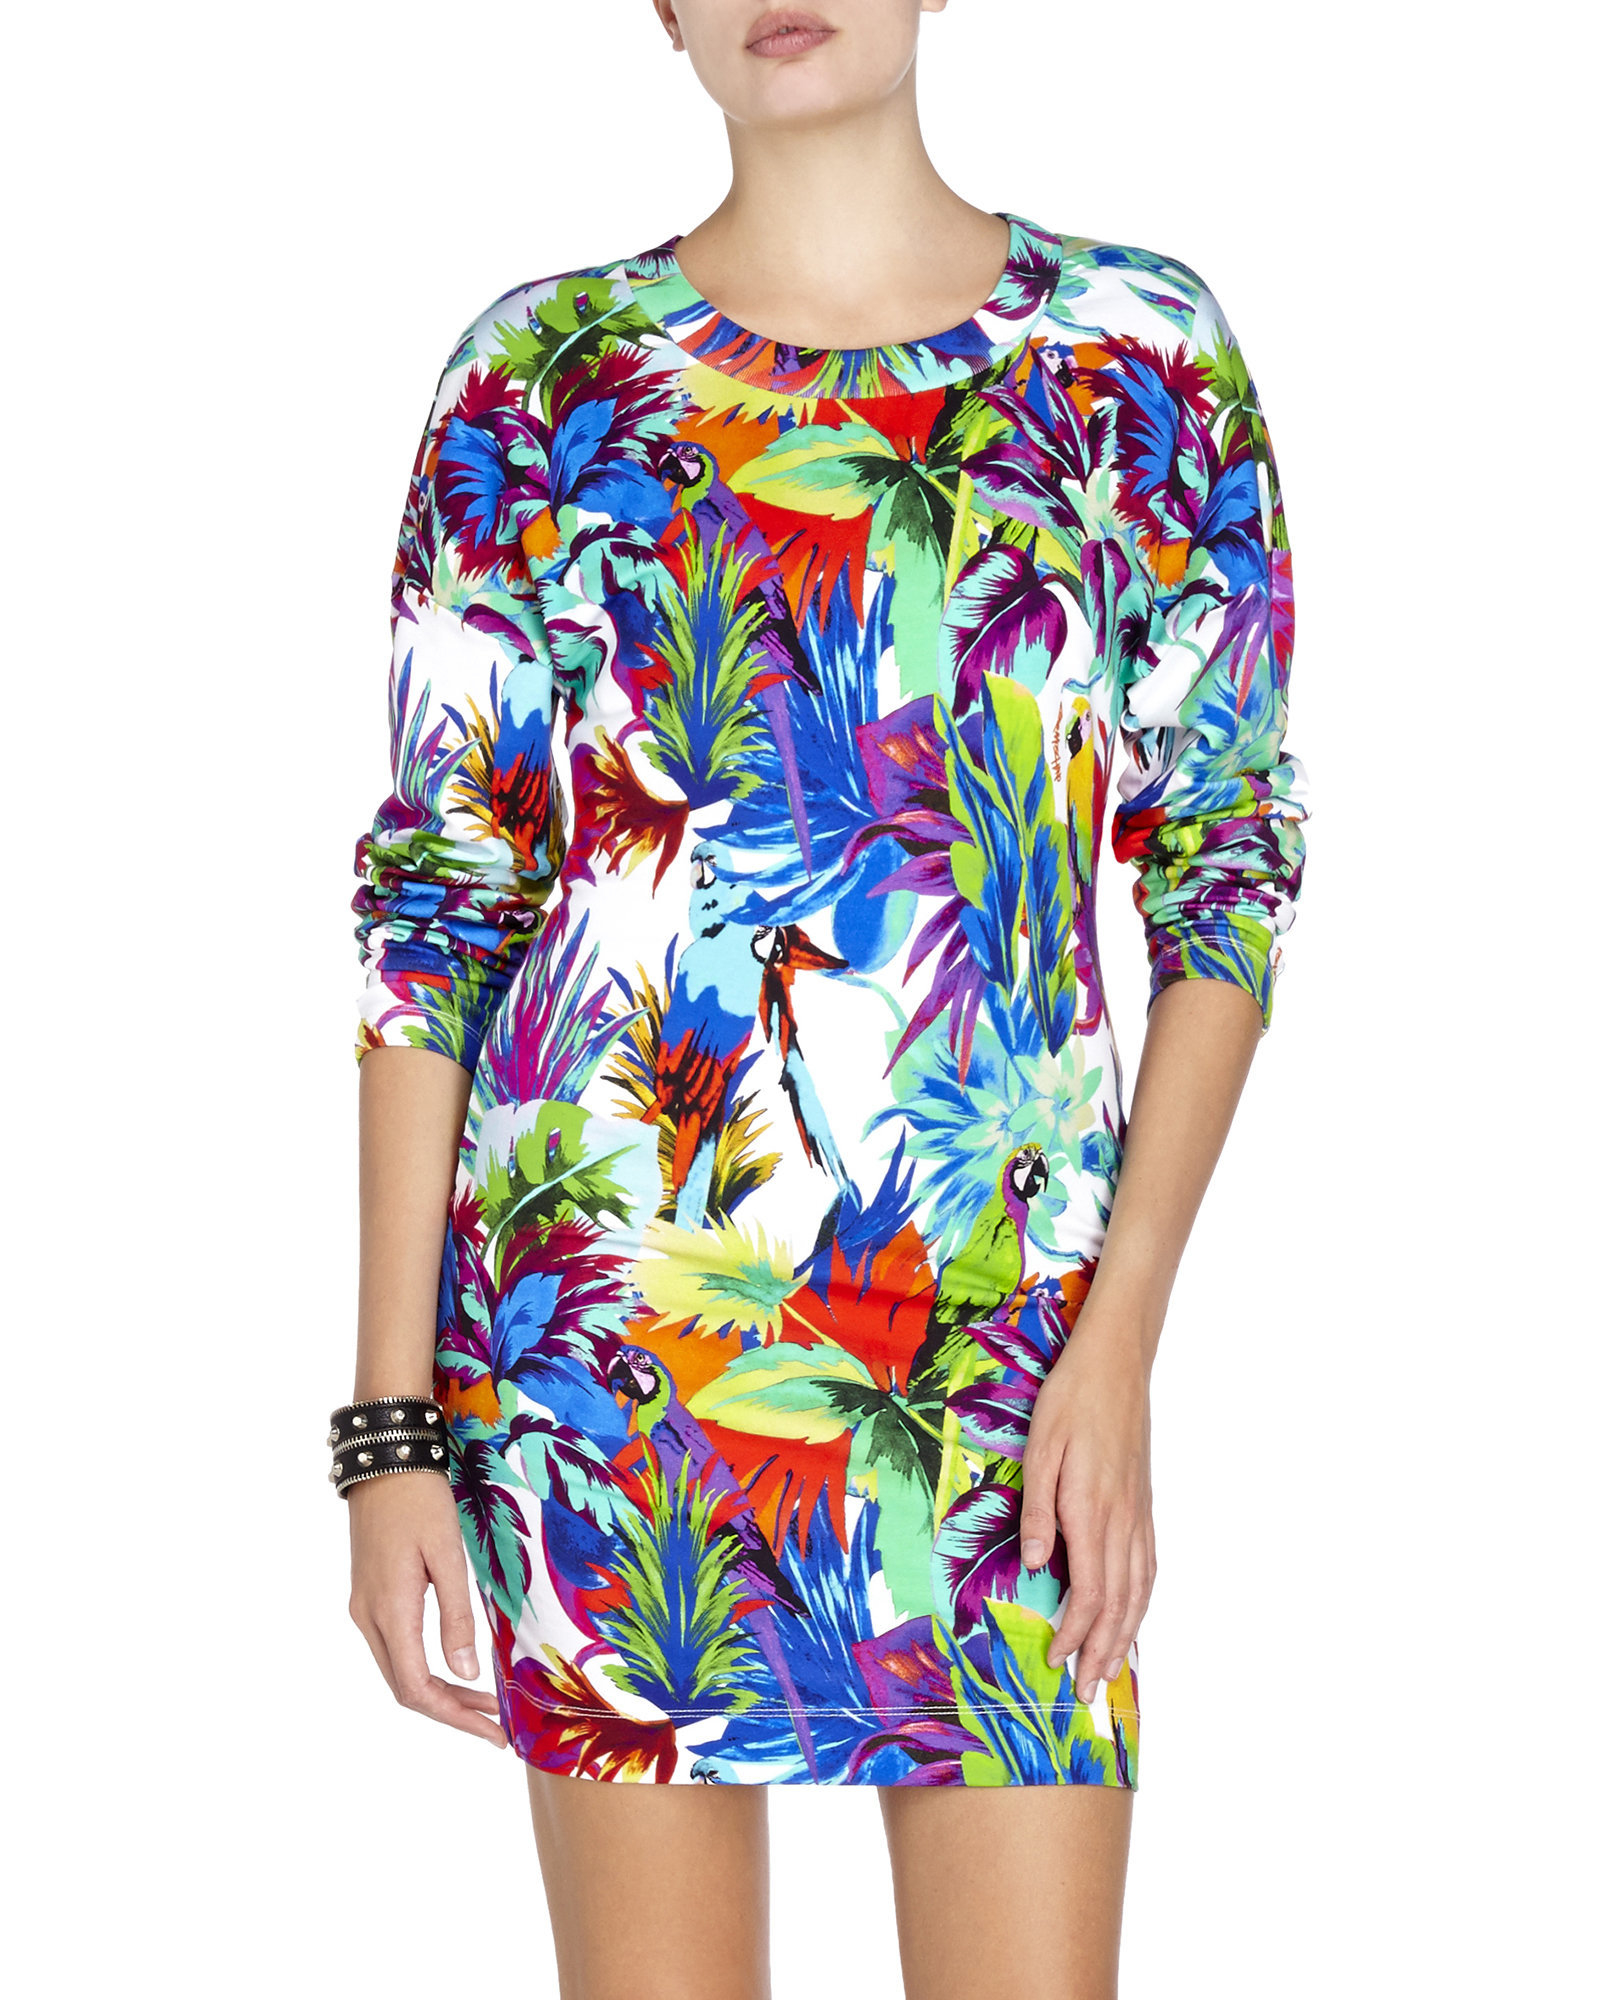 bce5ebc045 Love Moschino Long Sleeve Tropical Print Dress - Lyst